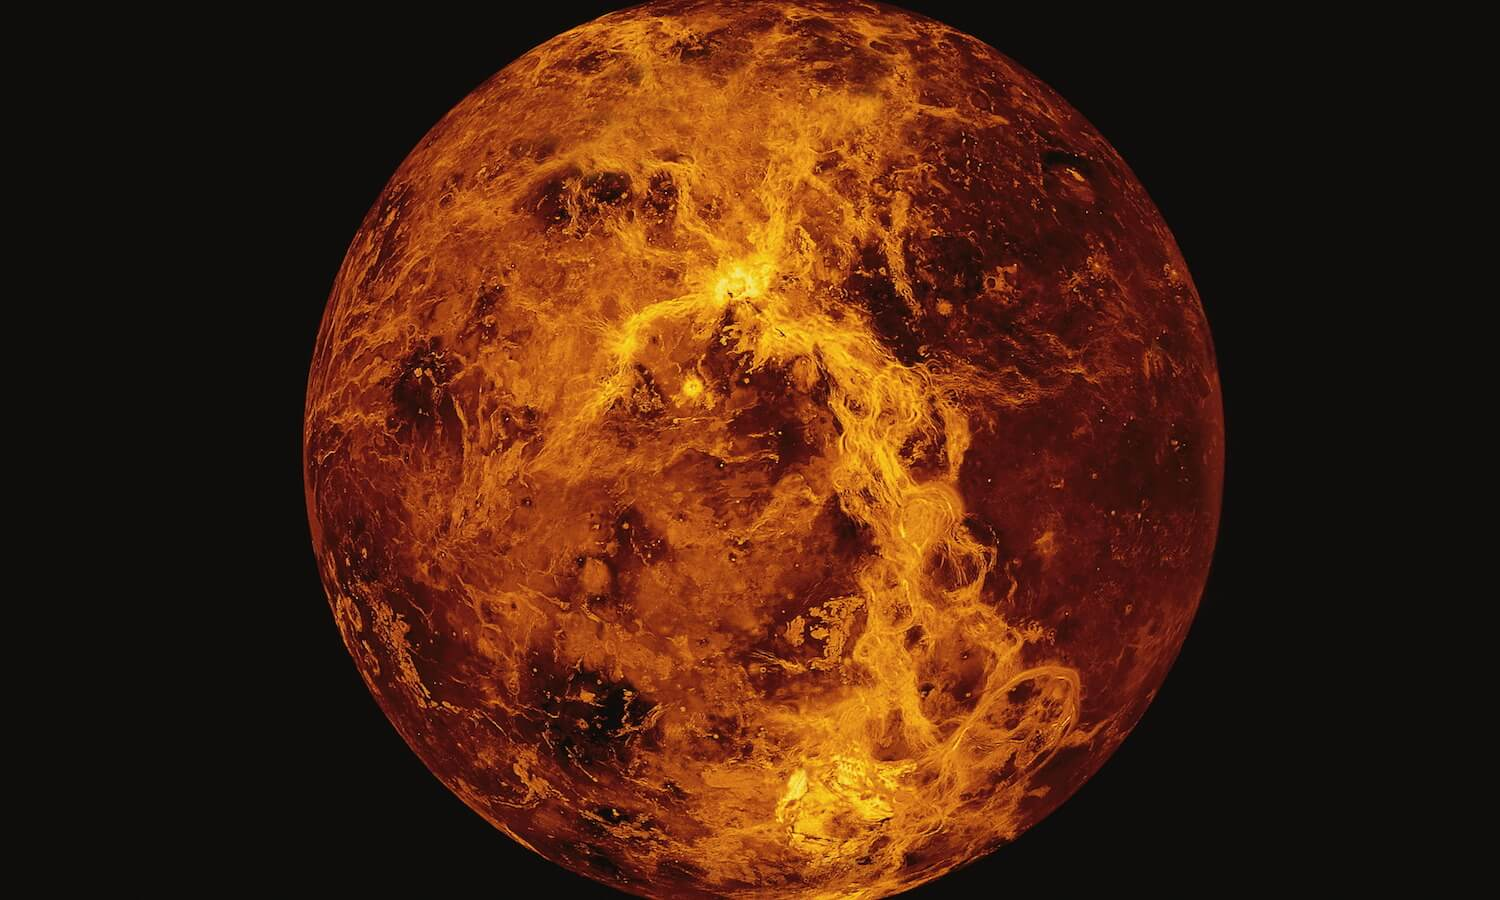 Close-up view of Venus